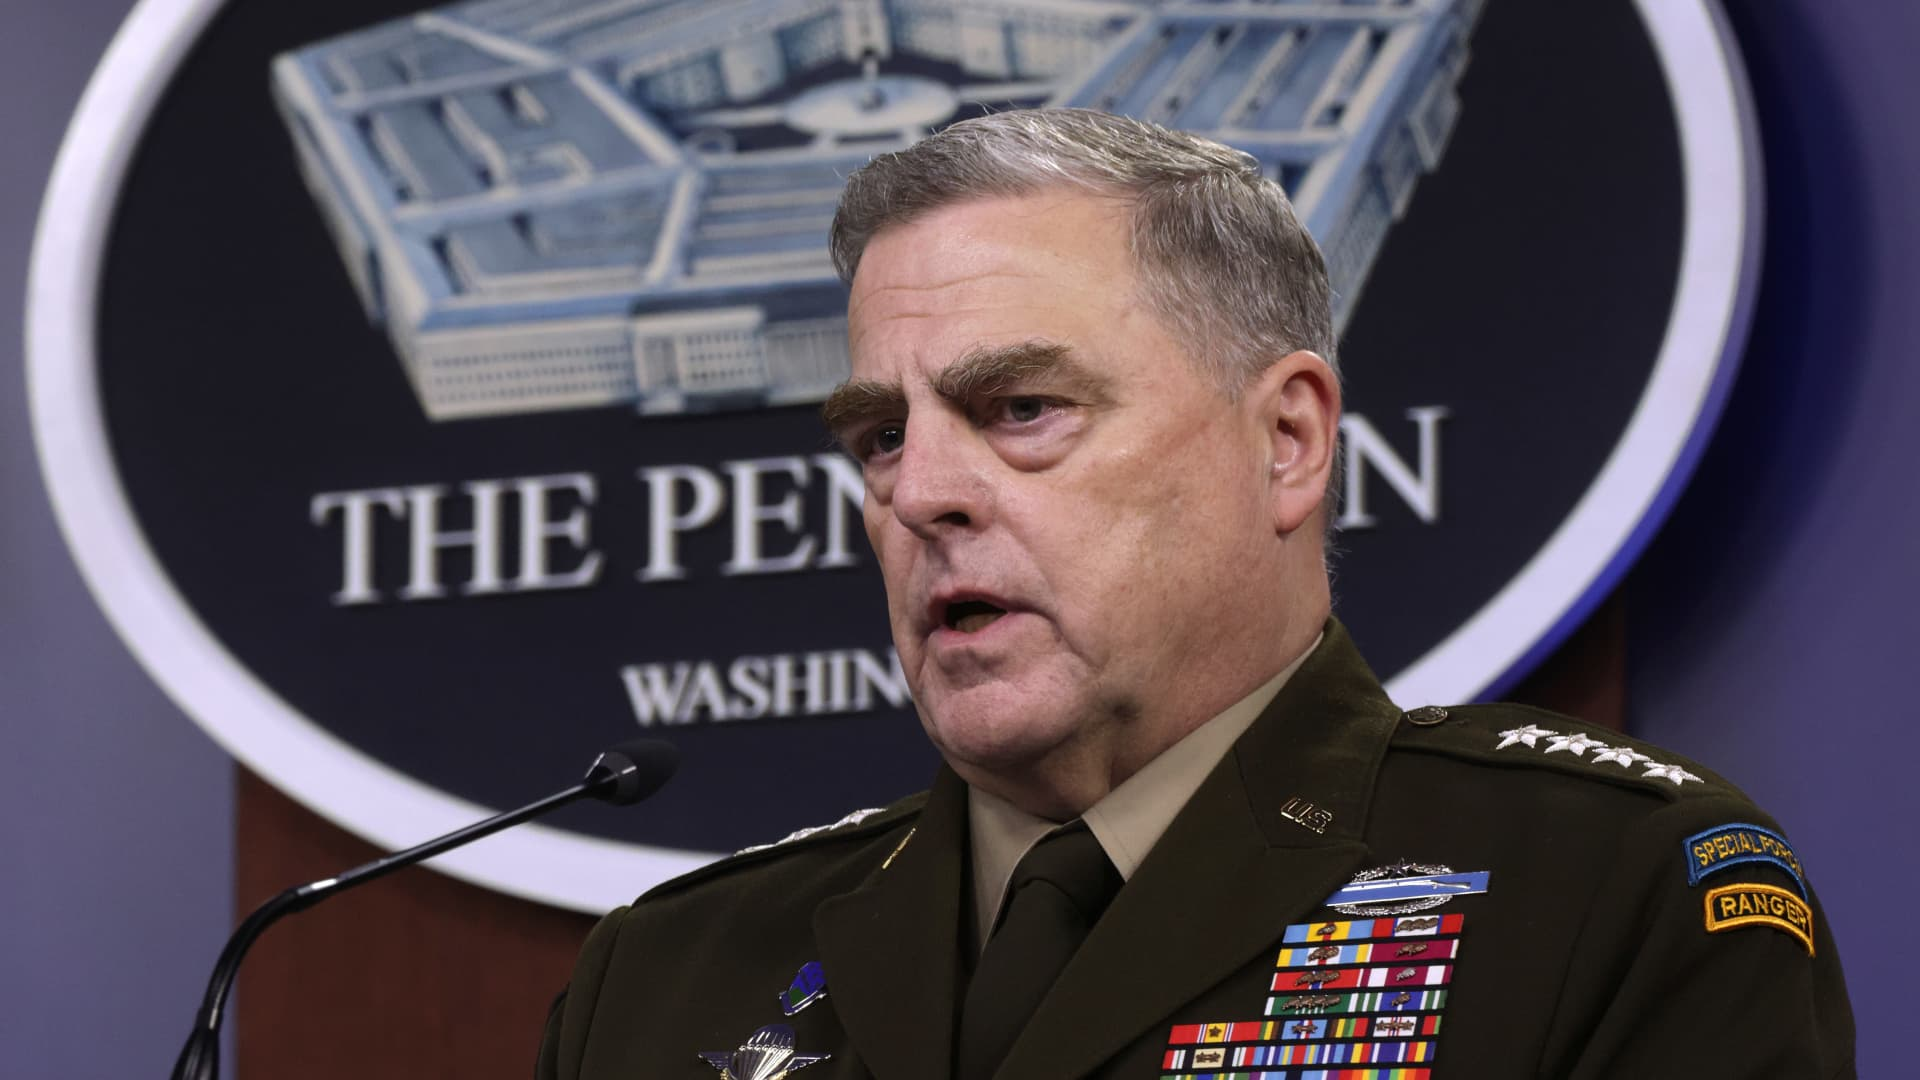 U.S. Chairman of the Joint Chiefs of Staff General. Mark Milley participates in a news briefing at the Pentagon May 6, 2021 in Arlington, Virginia.